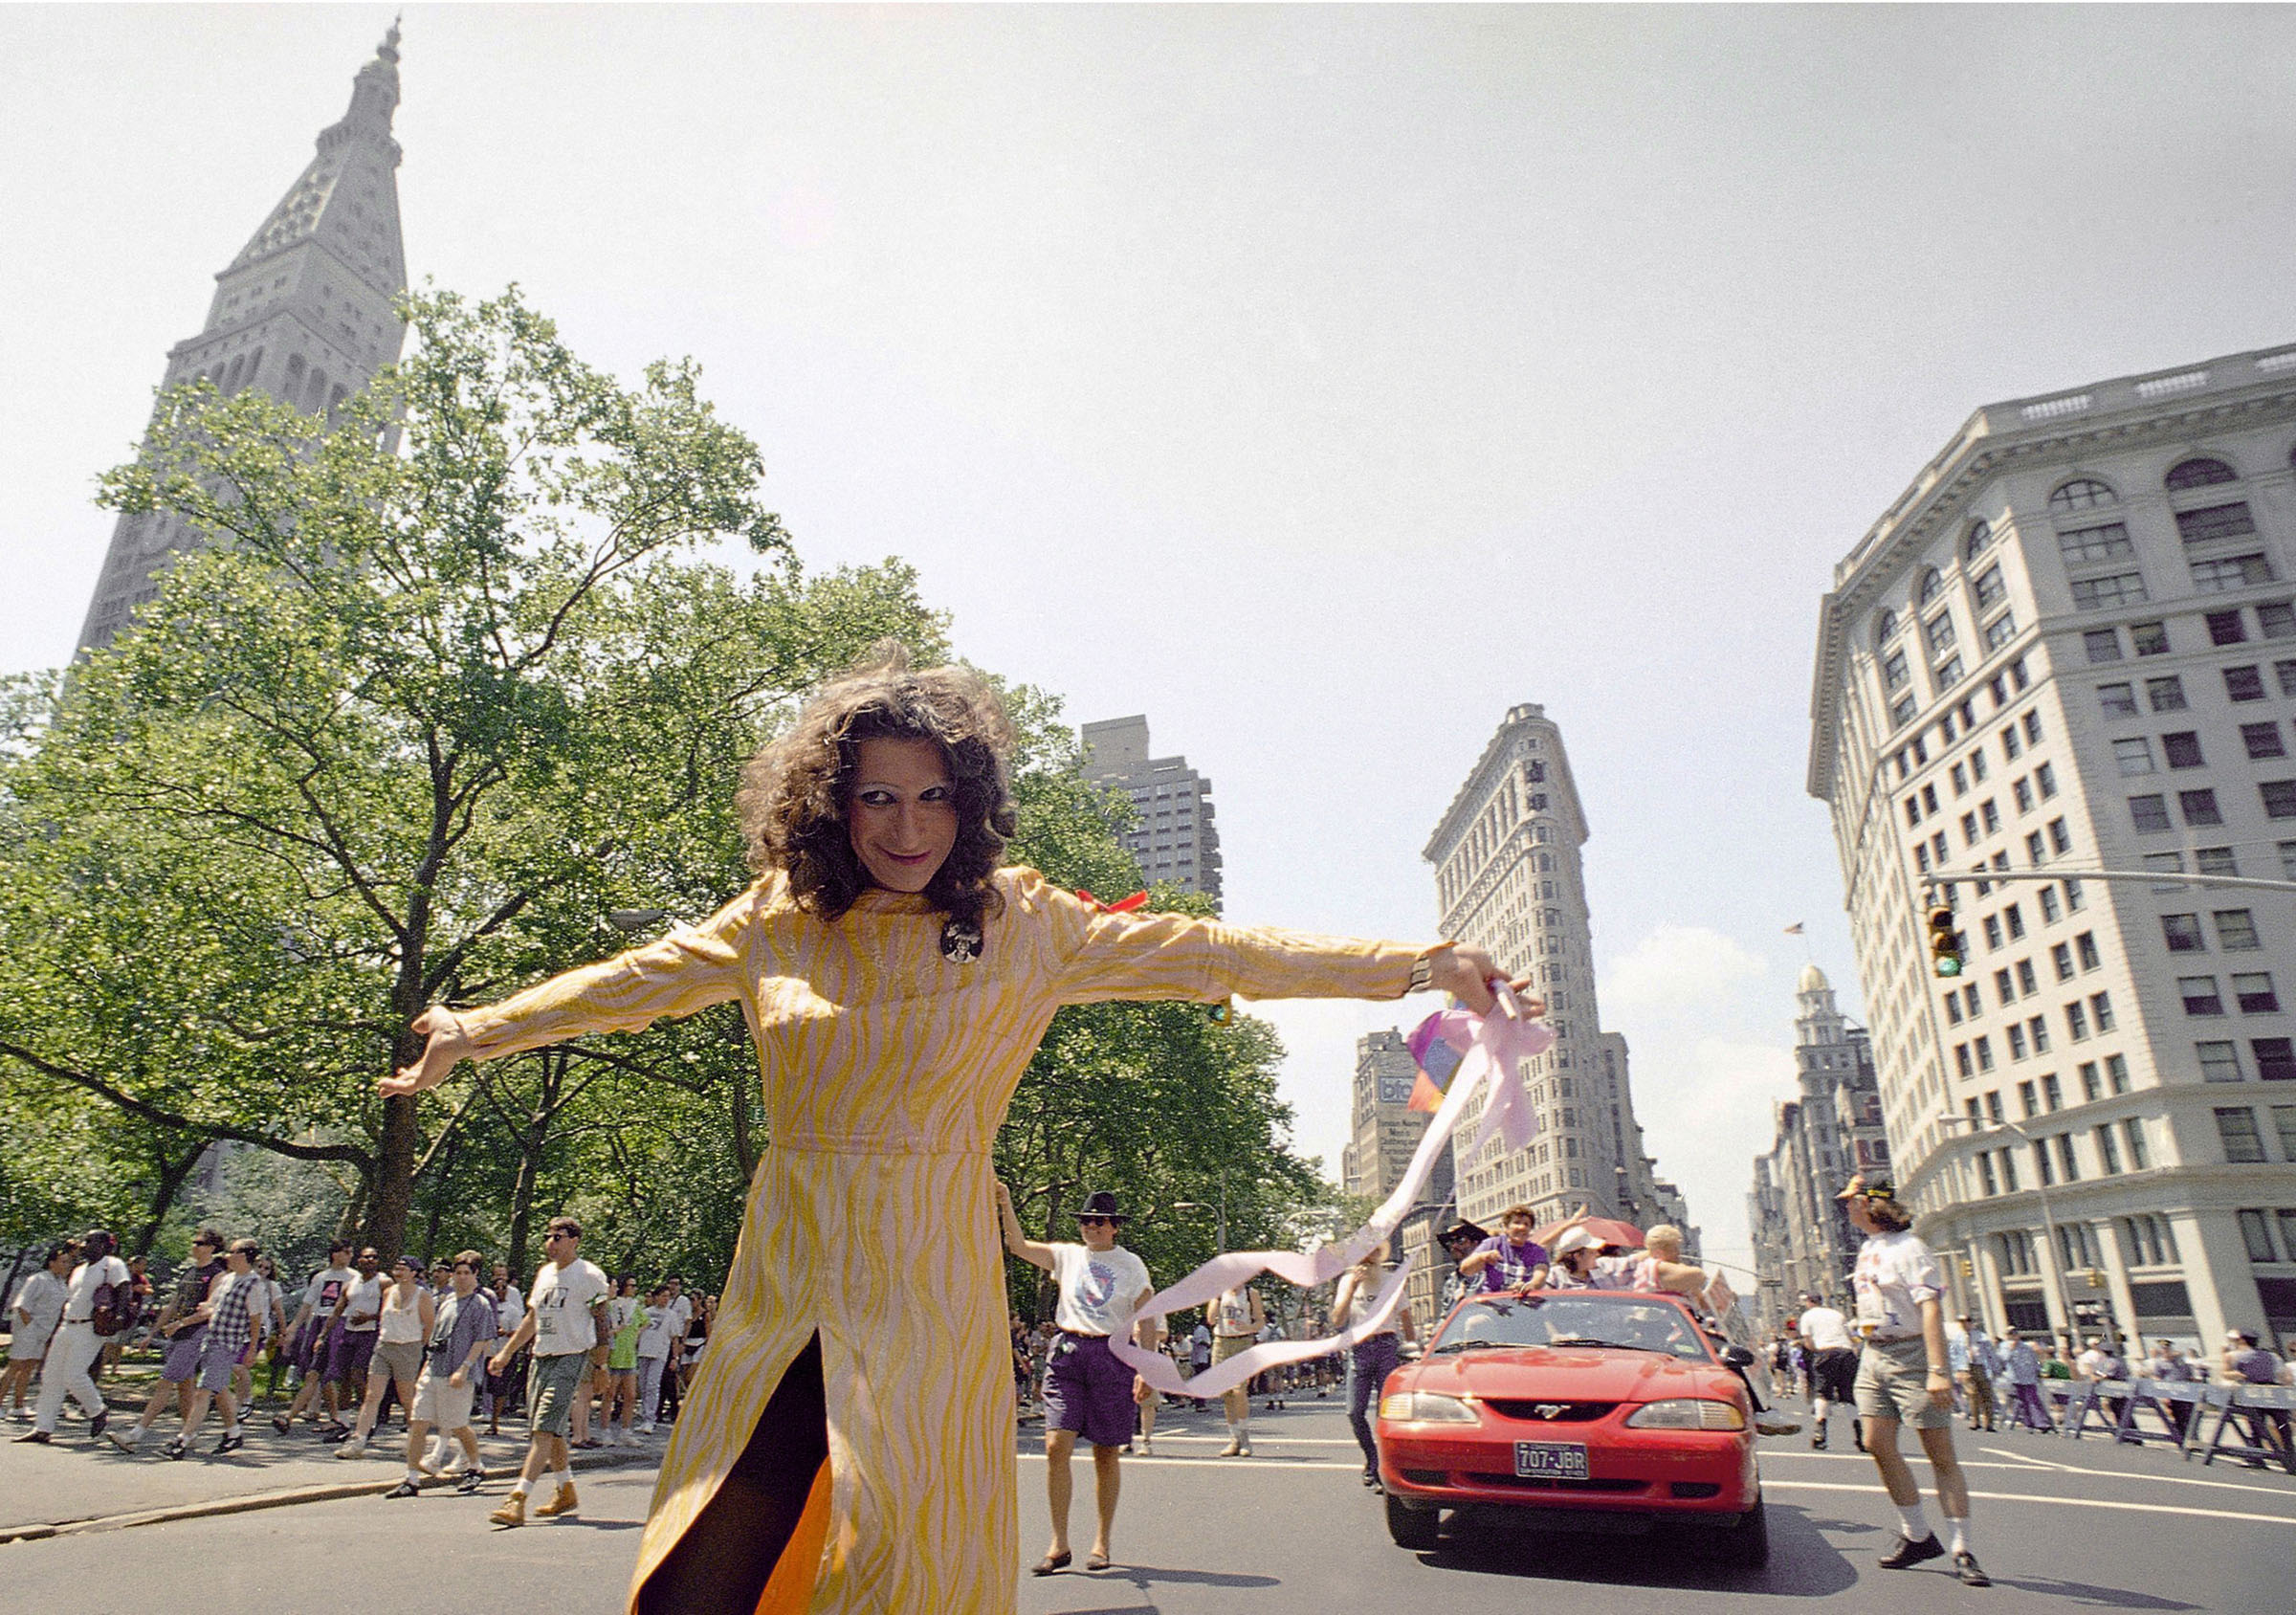 LGBT pioneer Sylvia Rivera leads an ACT-UP march past New York's Union Square Park on June 26, 1994.